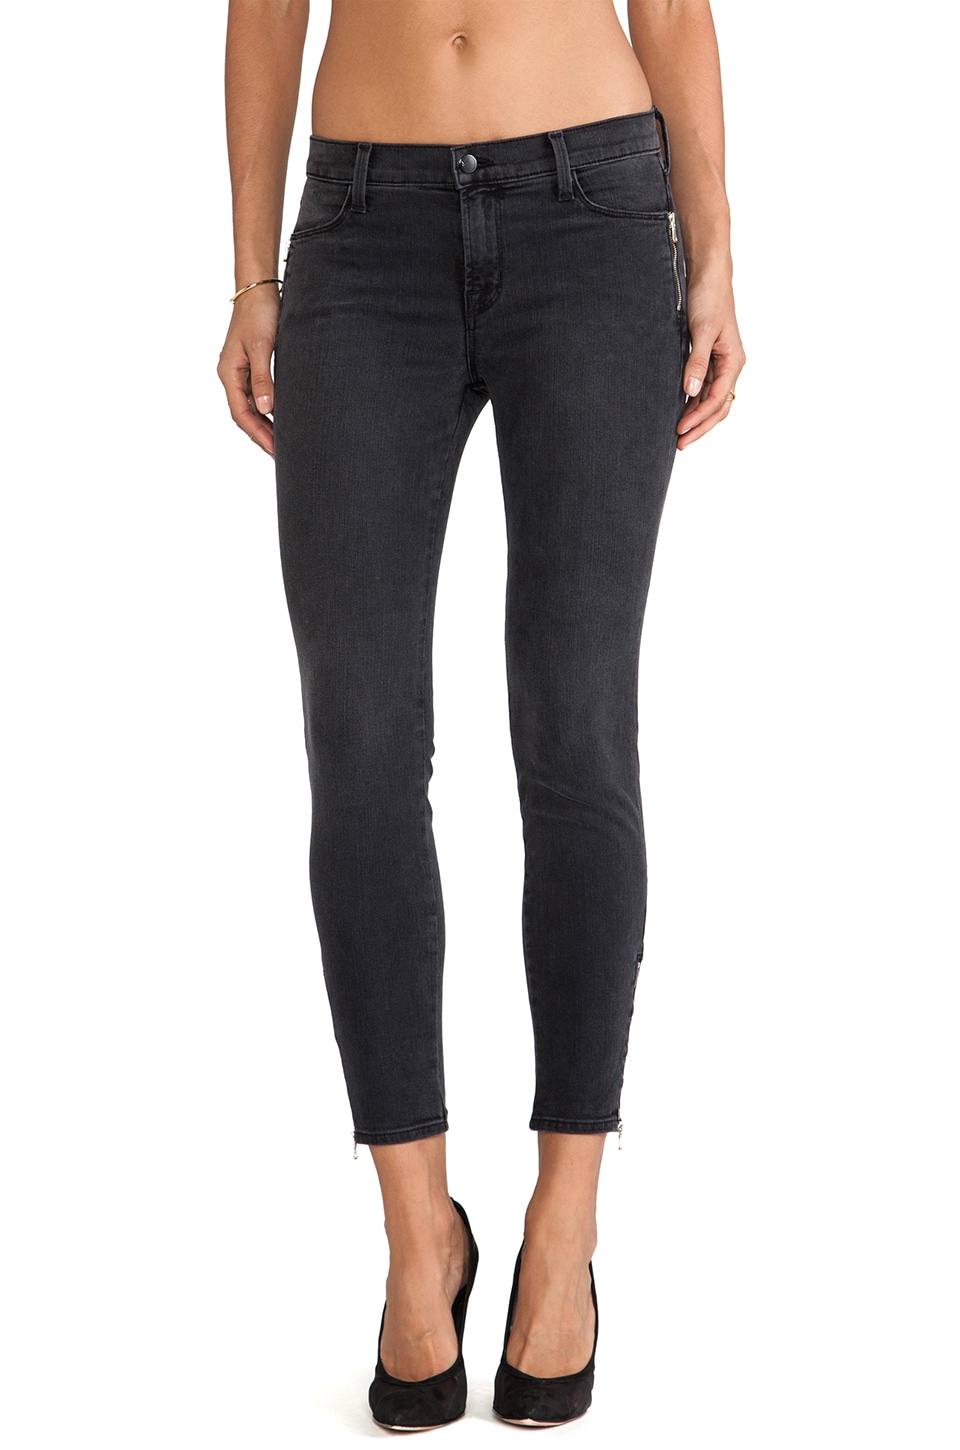 J Brand Tali Zip Pant in Grey Cascade